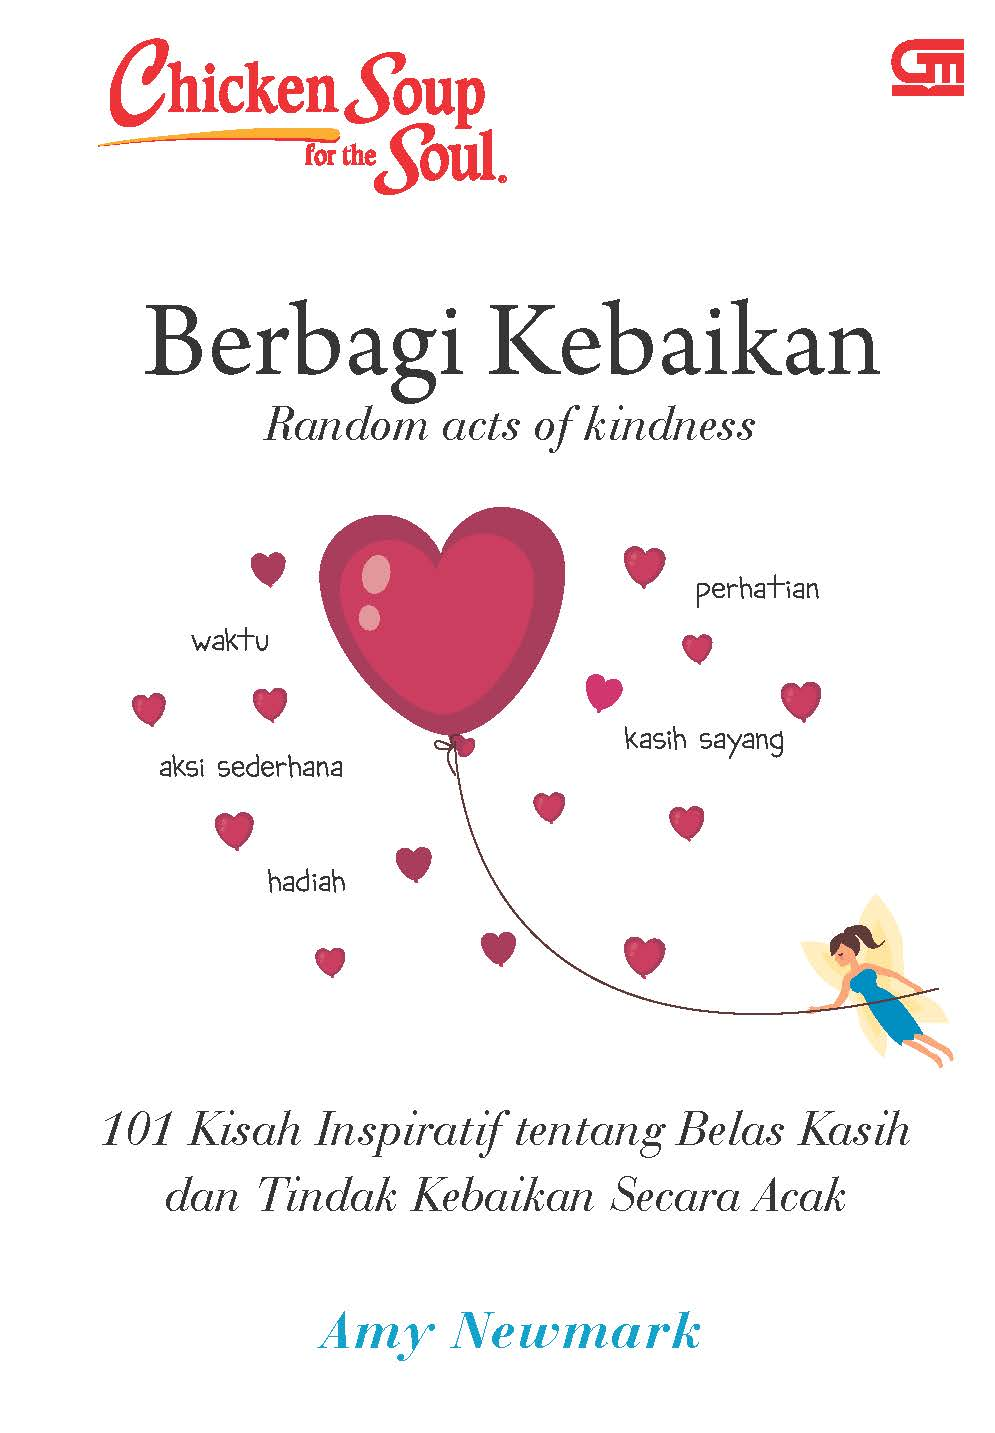 Chicken Soup for the Soul: Berbagi Kebaikan (Random acts of kindness)